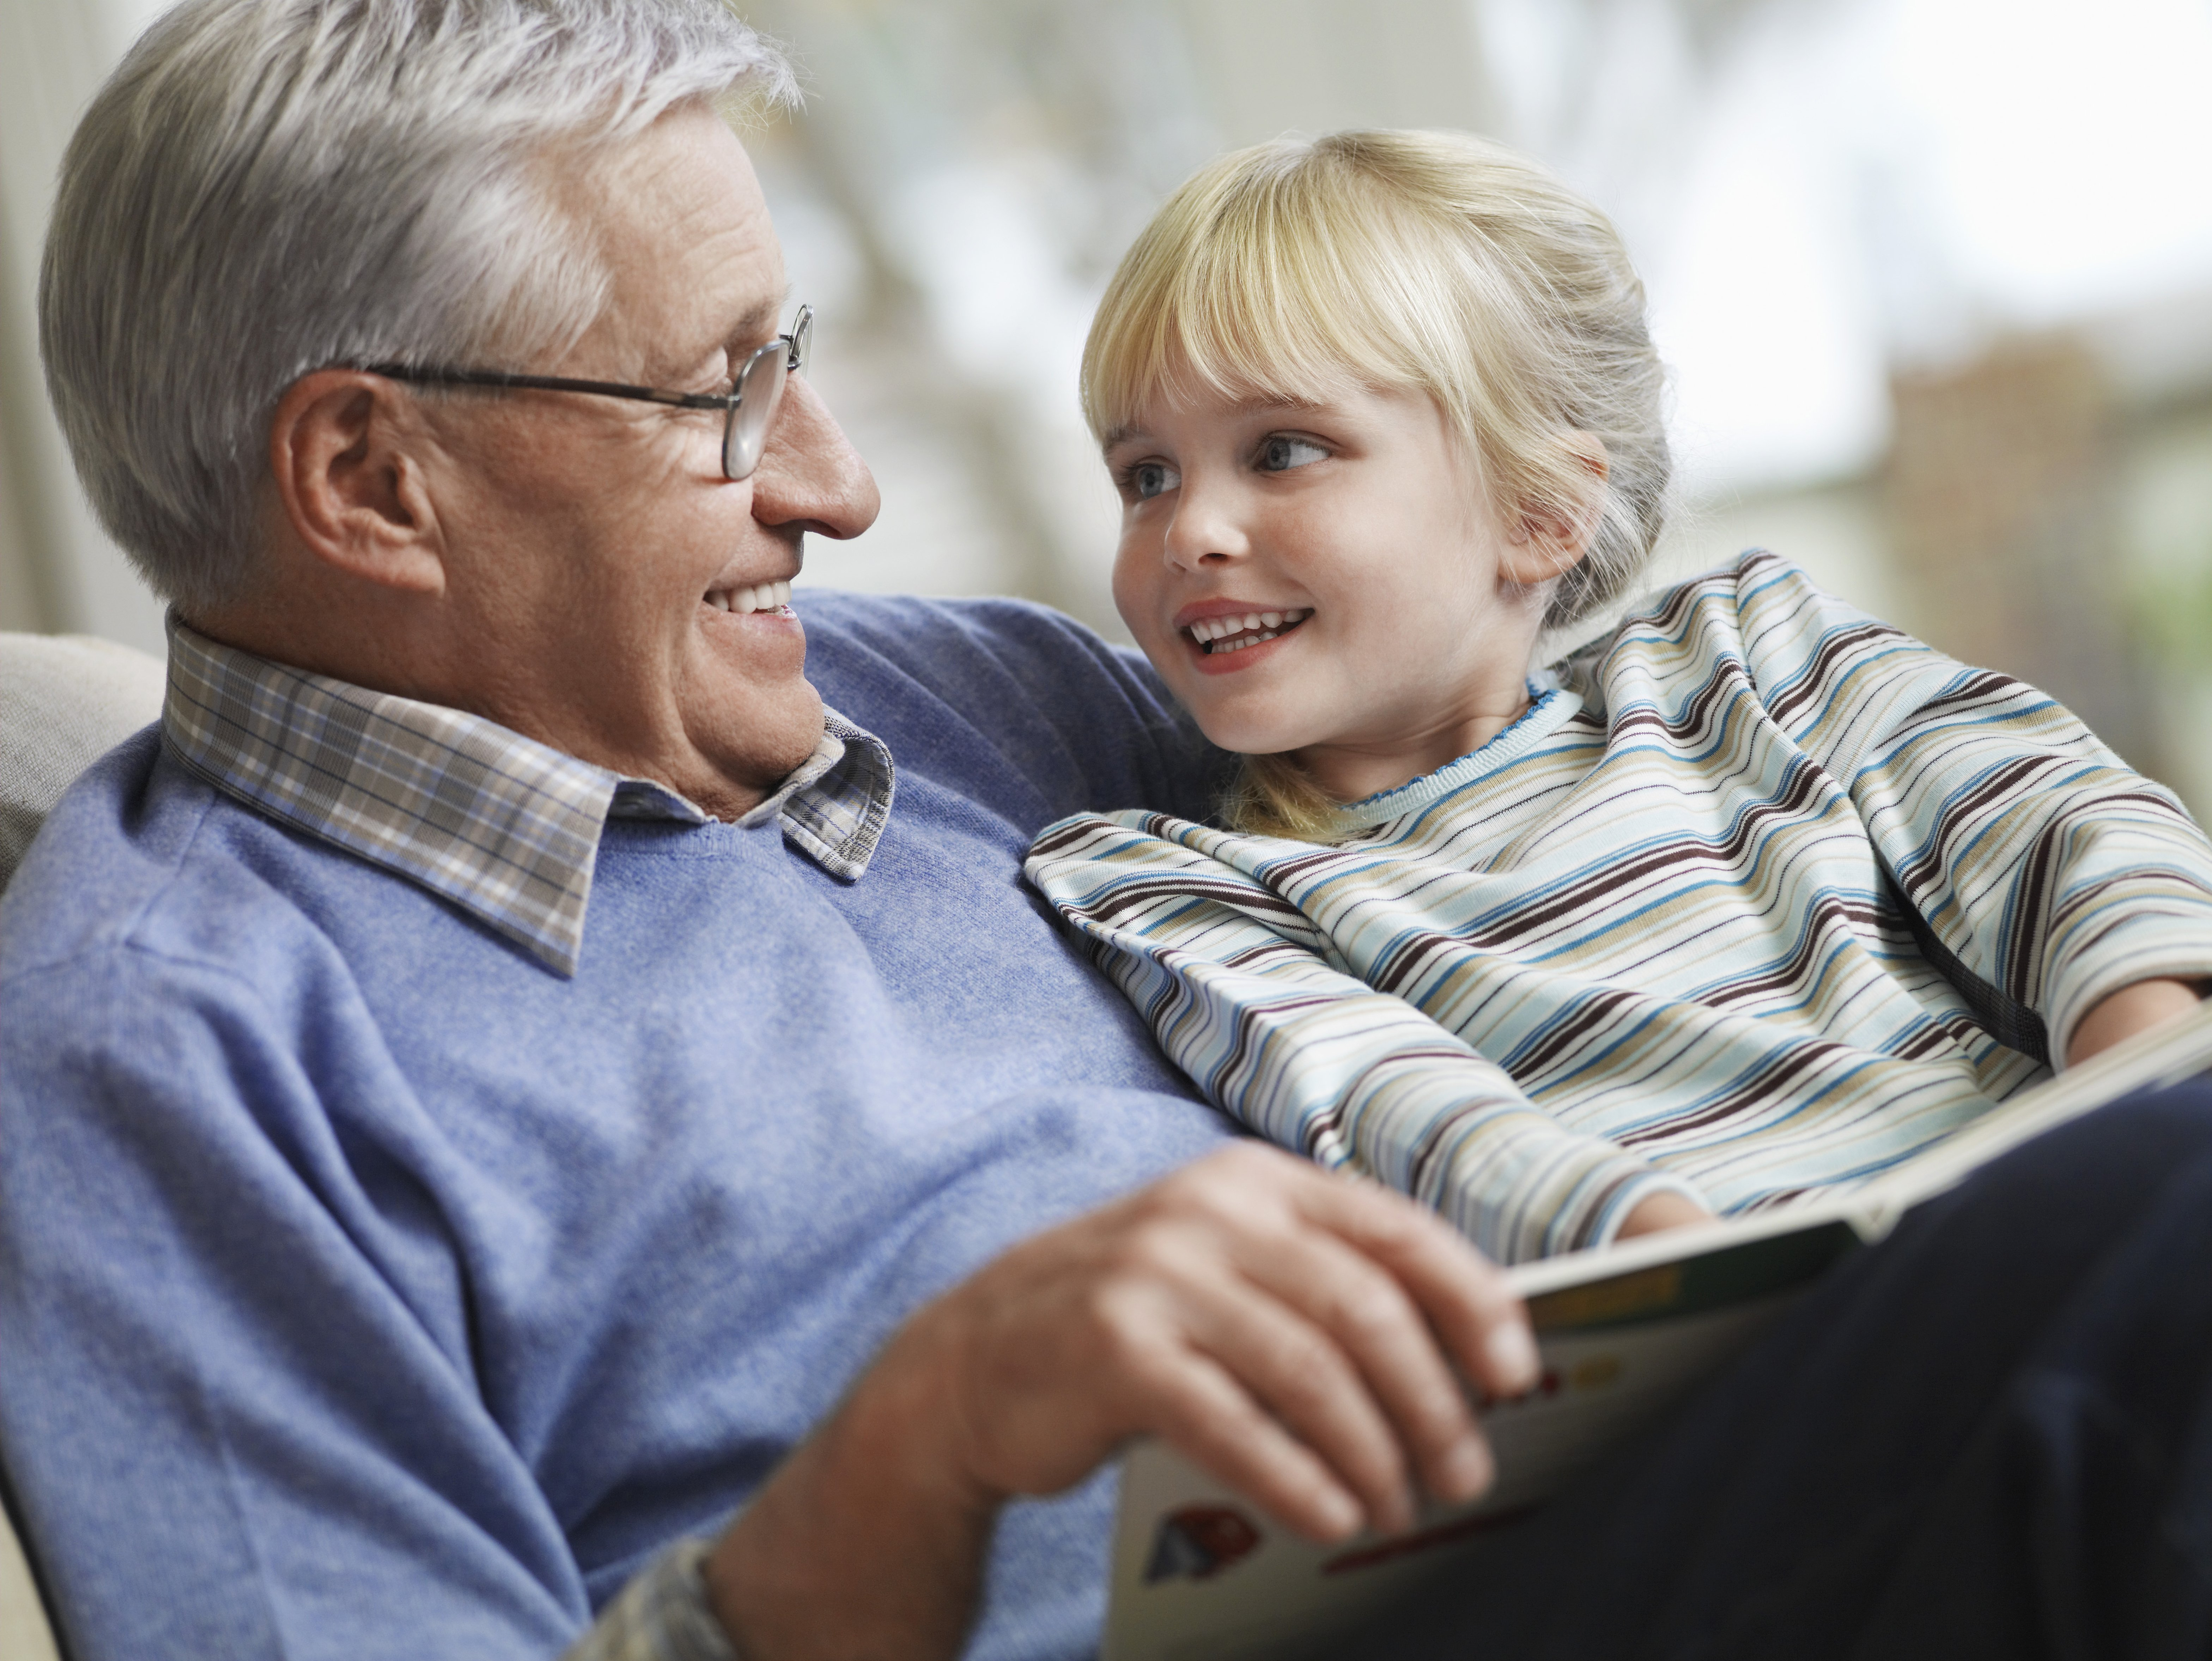 Happy little girl with grandfather reading story book at home | Photo: Shutterstock.com